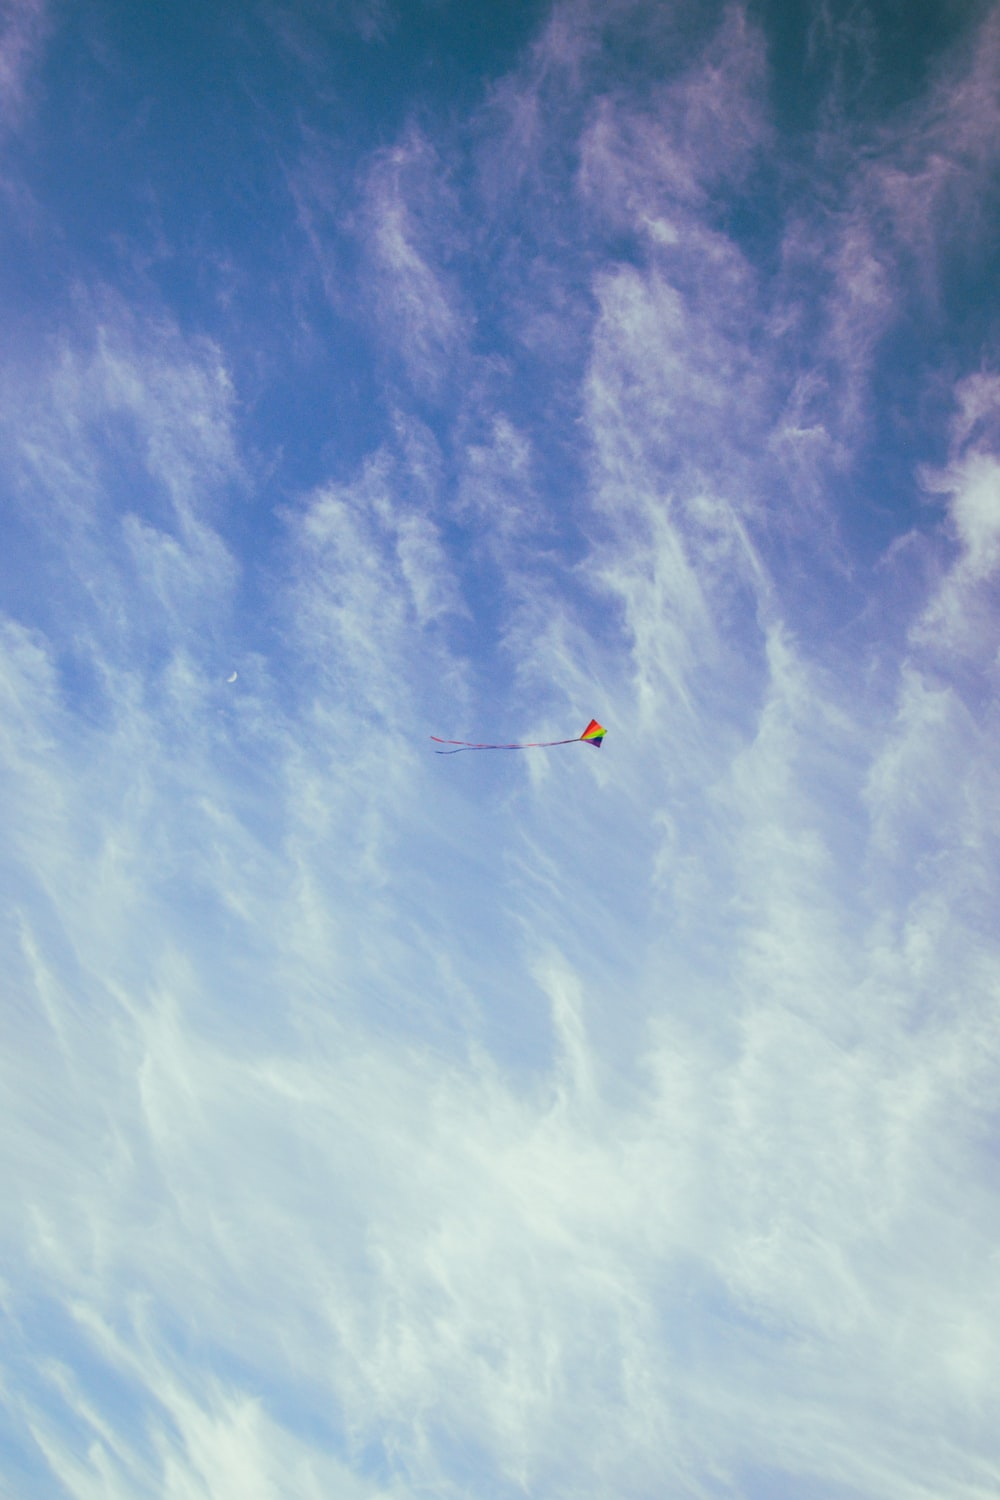 kite flying on sky